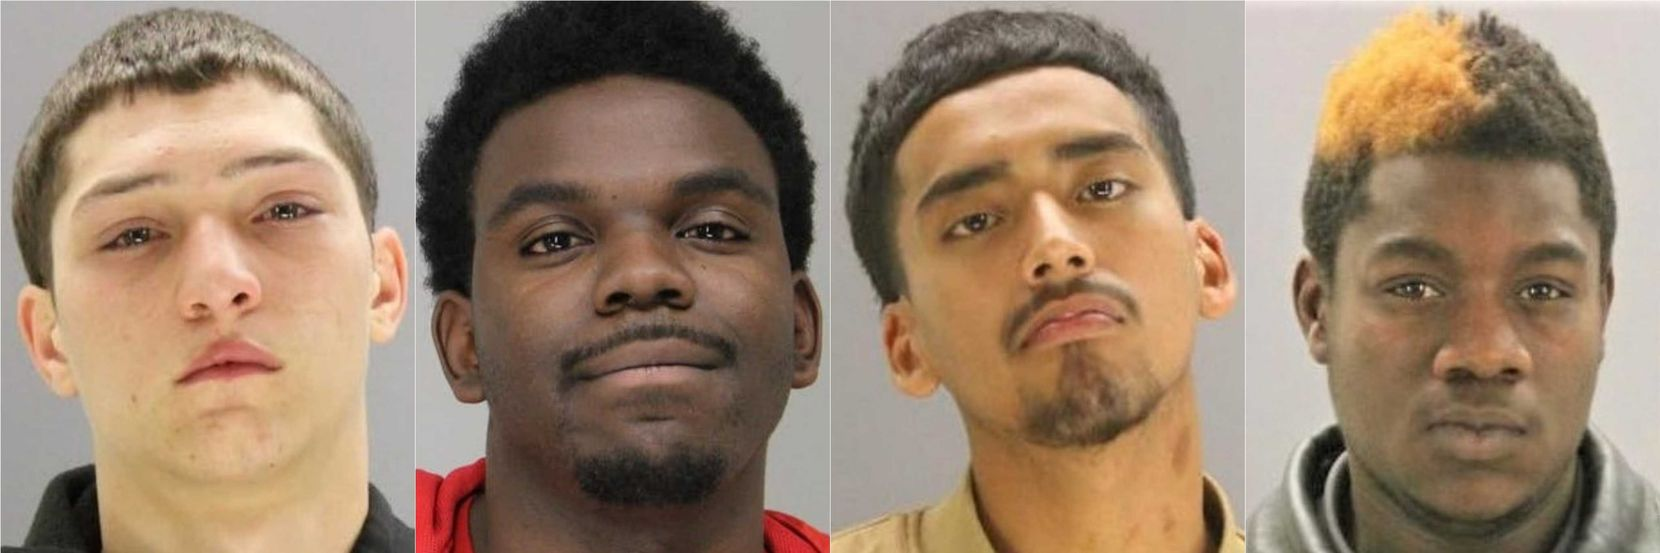 Daniel Jenkins (left) is the last of four men to plead guilty to federal charges in connection with a 2017 scheme that targeted gay men using the Grindr app. The others are (continuing toward right) Michael Atkinson, Pablo Ceniceros-Deleon and Daryl Henry.